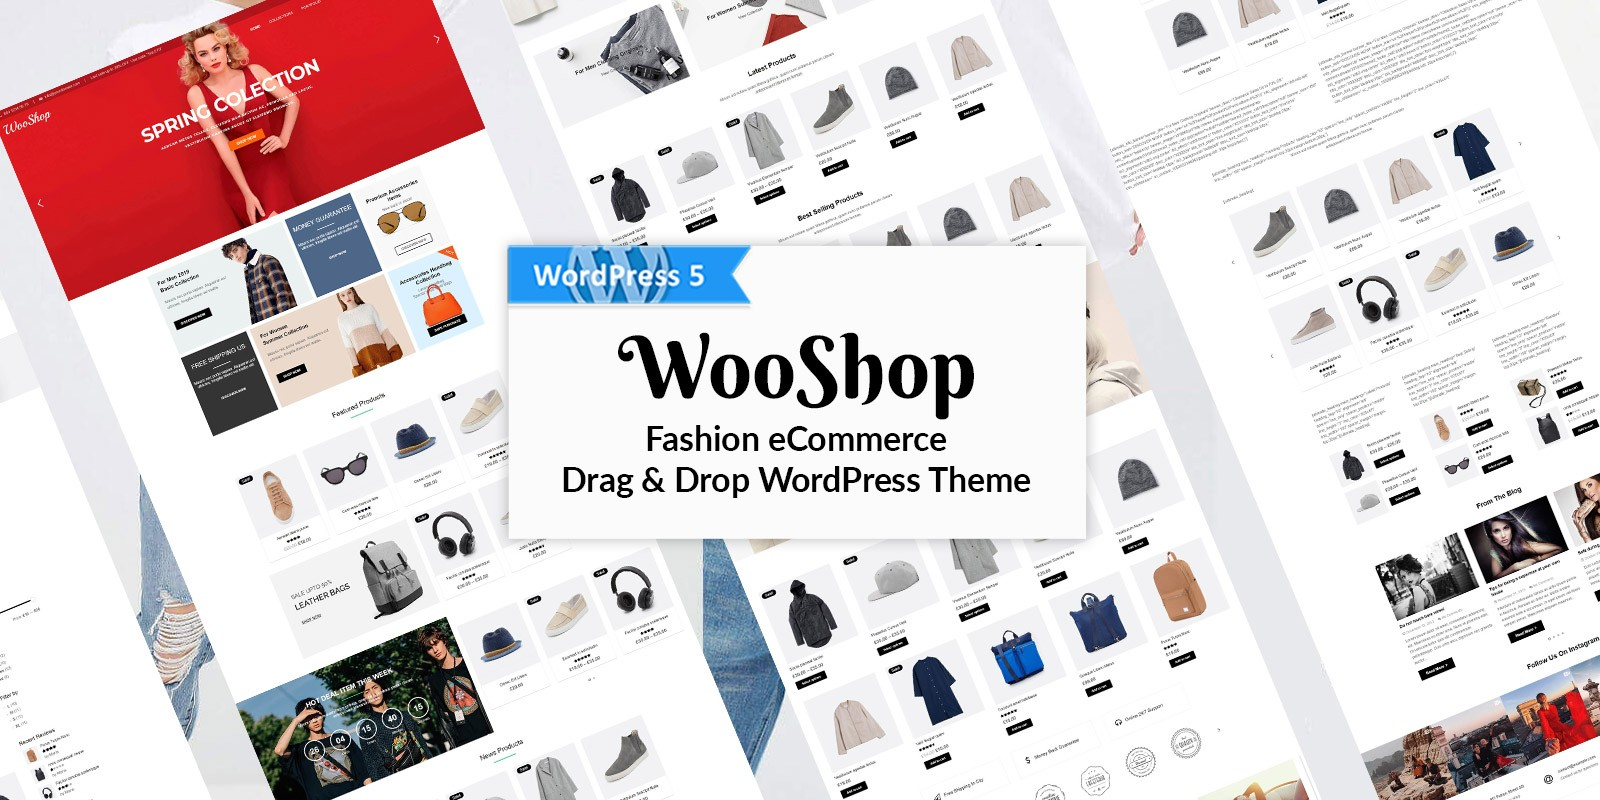 WooShop - Fashion eCommerce WooCommerce Theme